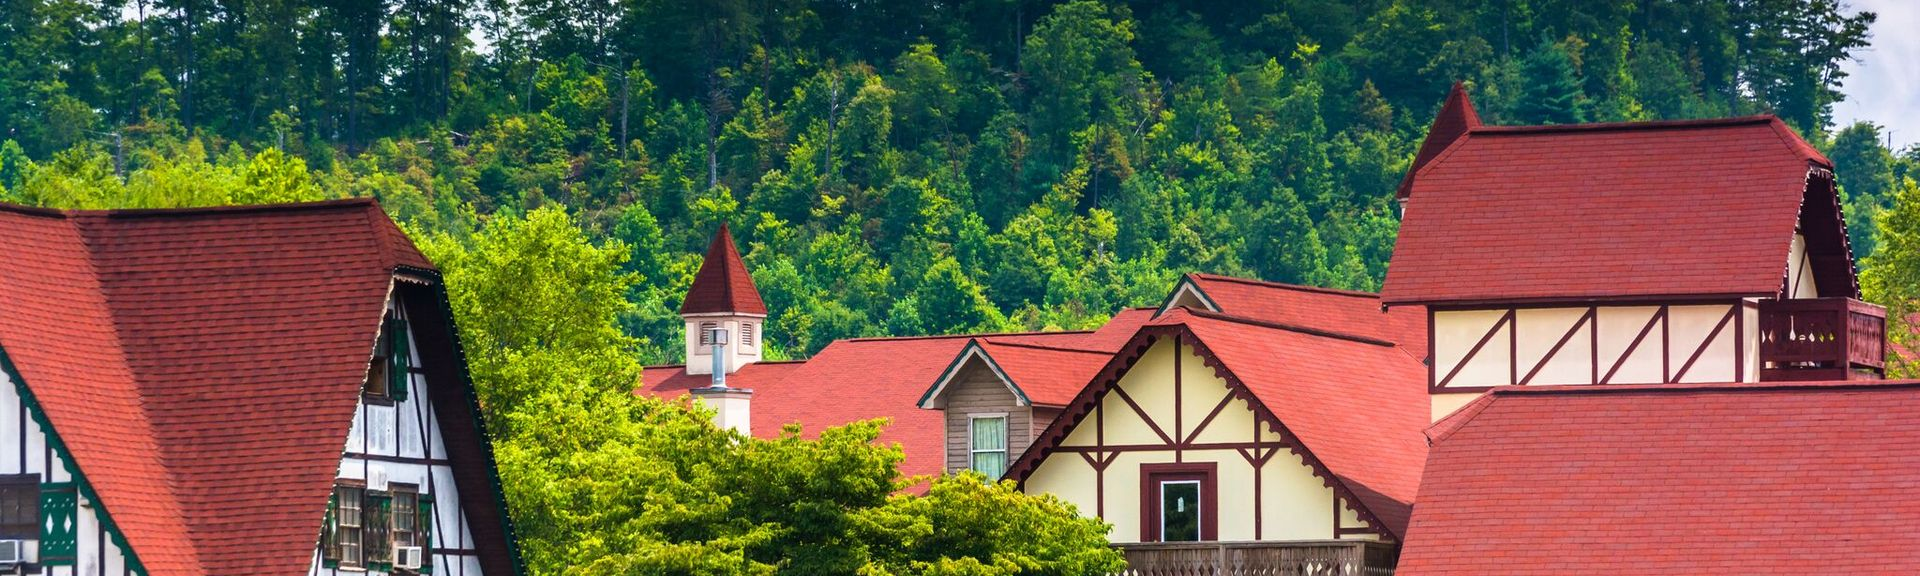 Vrbo Helen Ga Vacation Rentals Reviews Booking